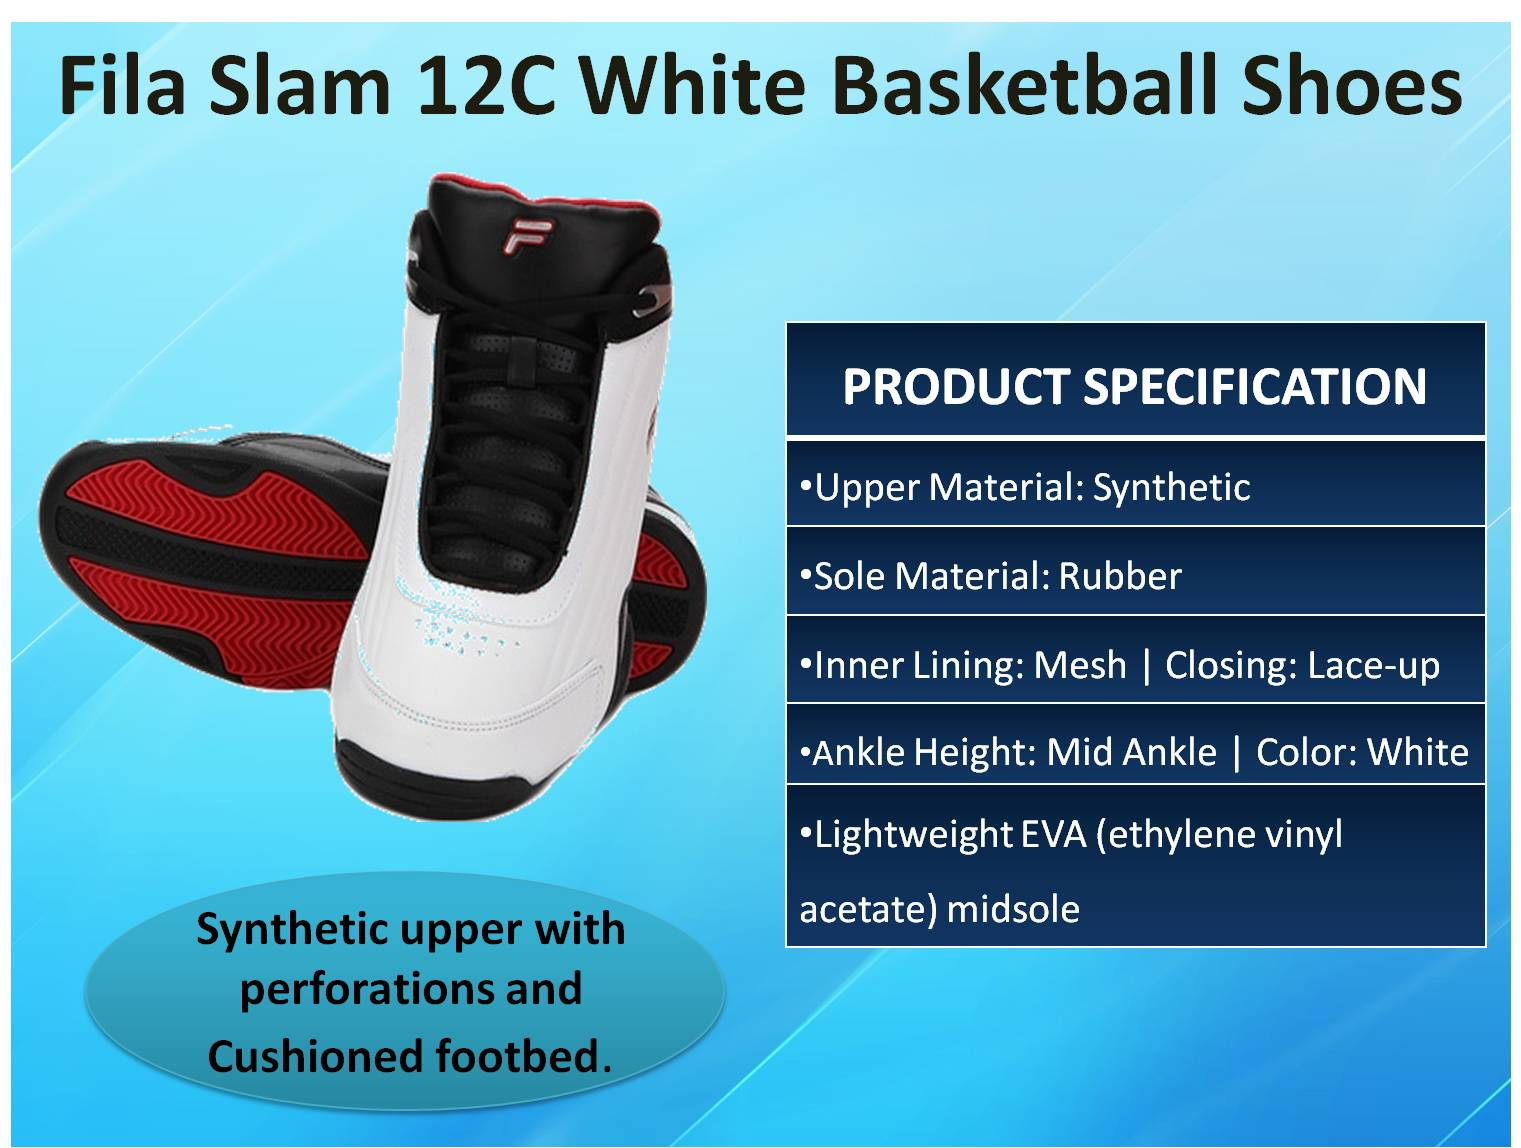 Fila SLam 12C White Basketball Shoes